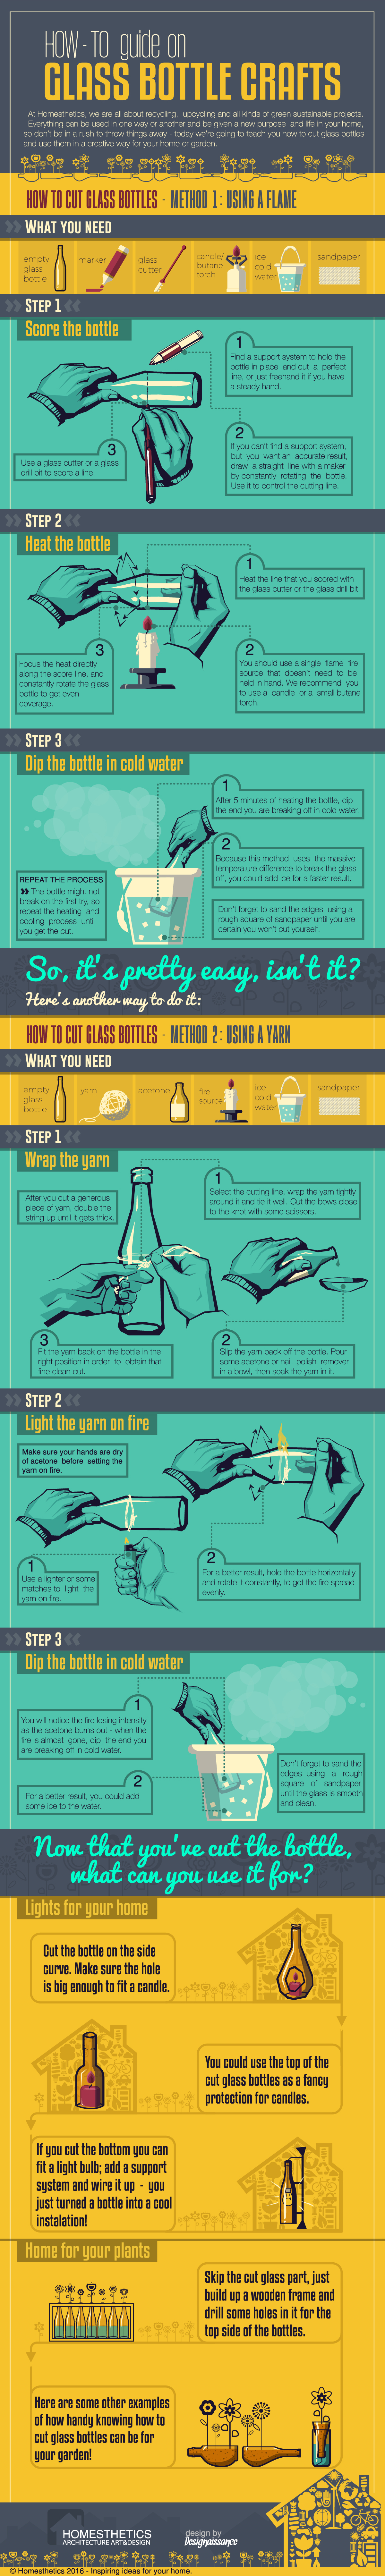 How-To Guide on Glass Bottle Crafts